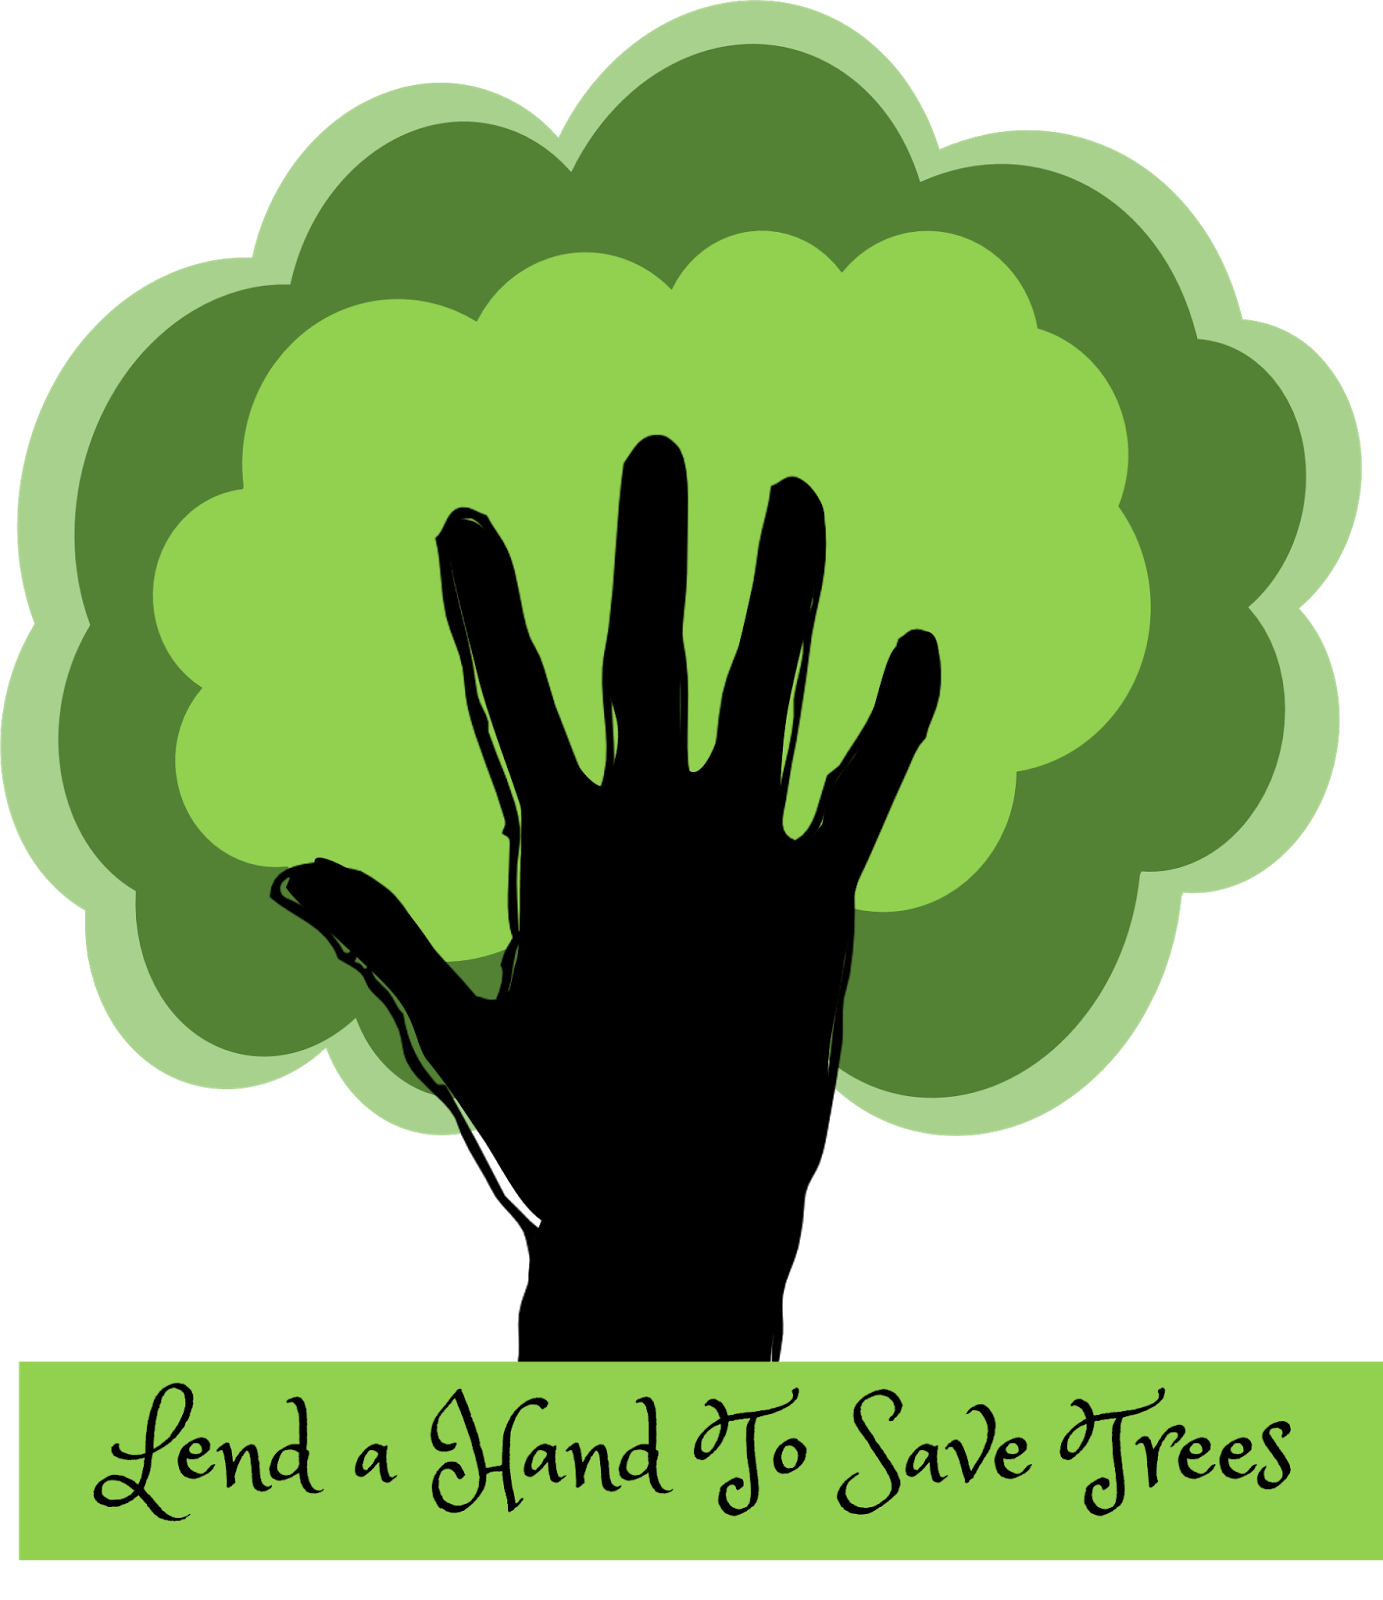 Cut down tree clipart image freeuse library Save Tree PNG Transparent Images | PNG All image freeuse library